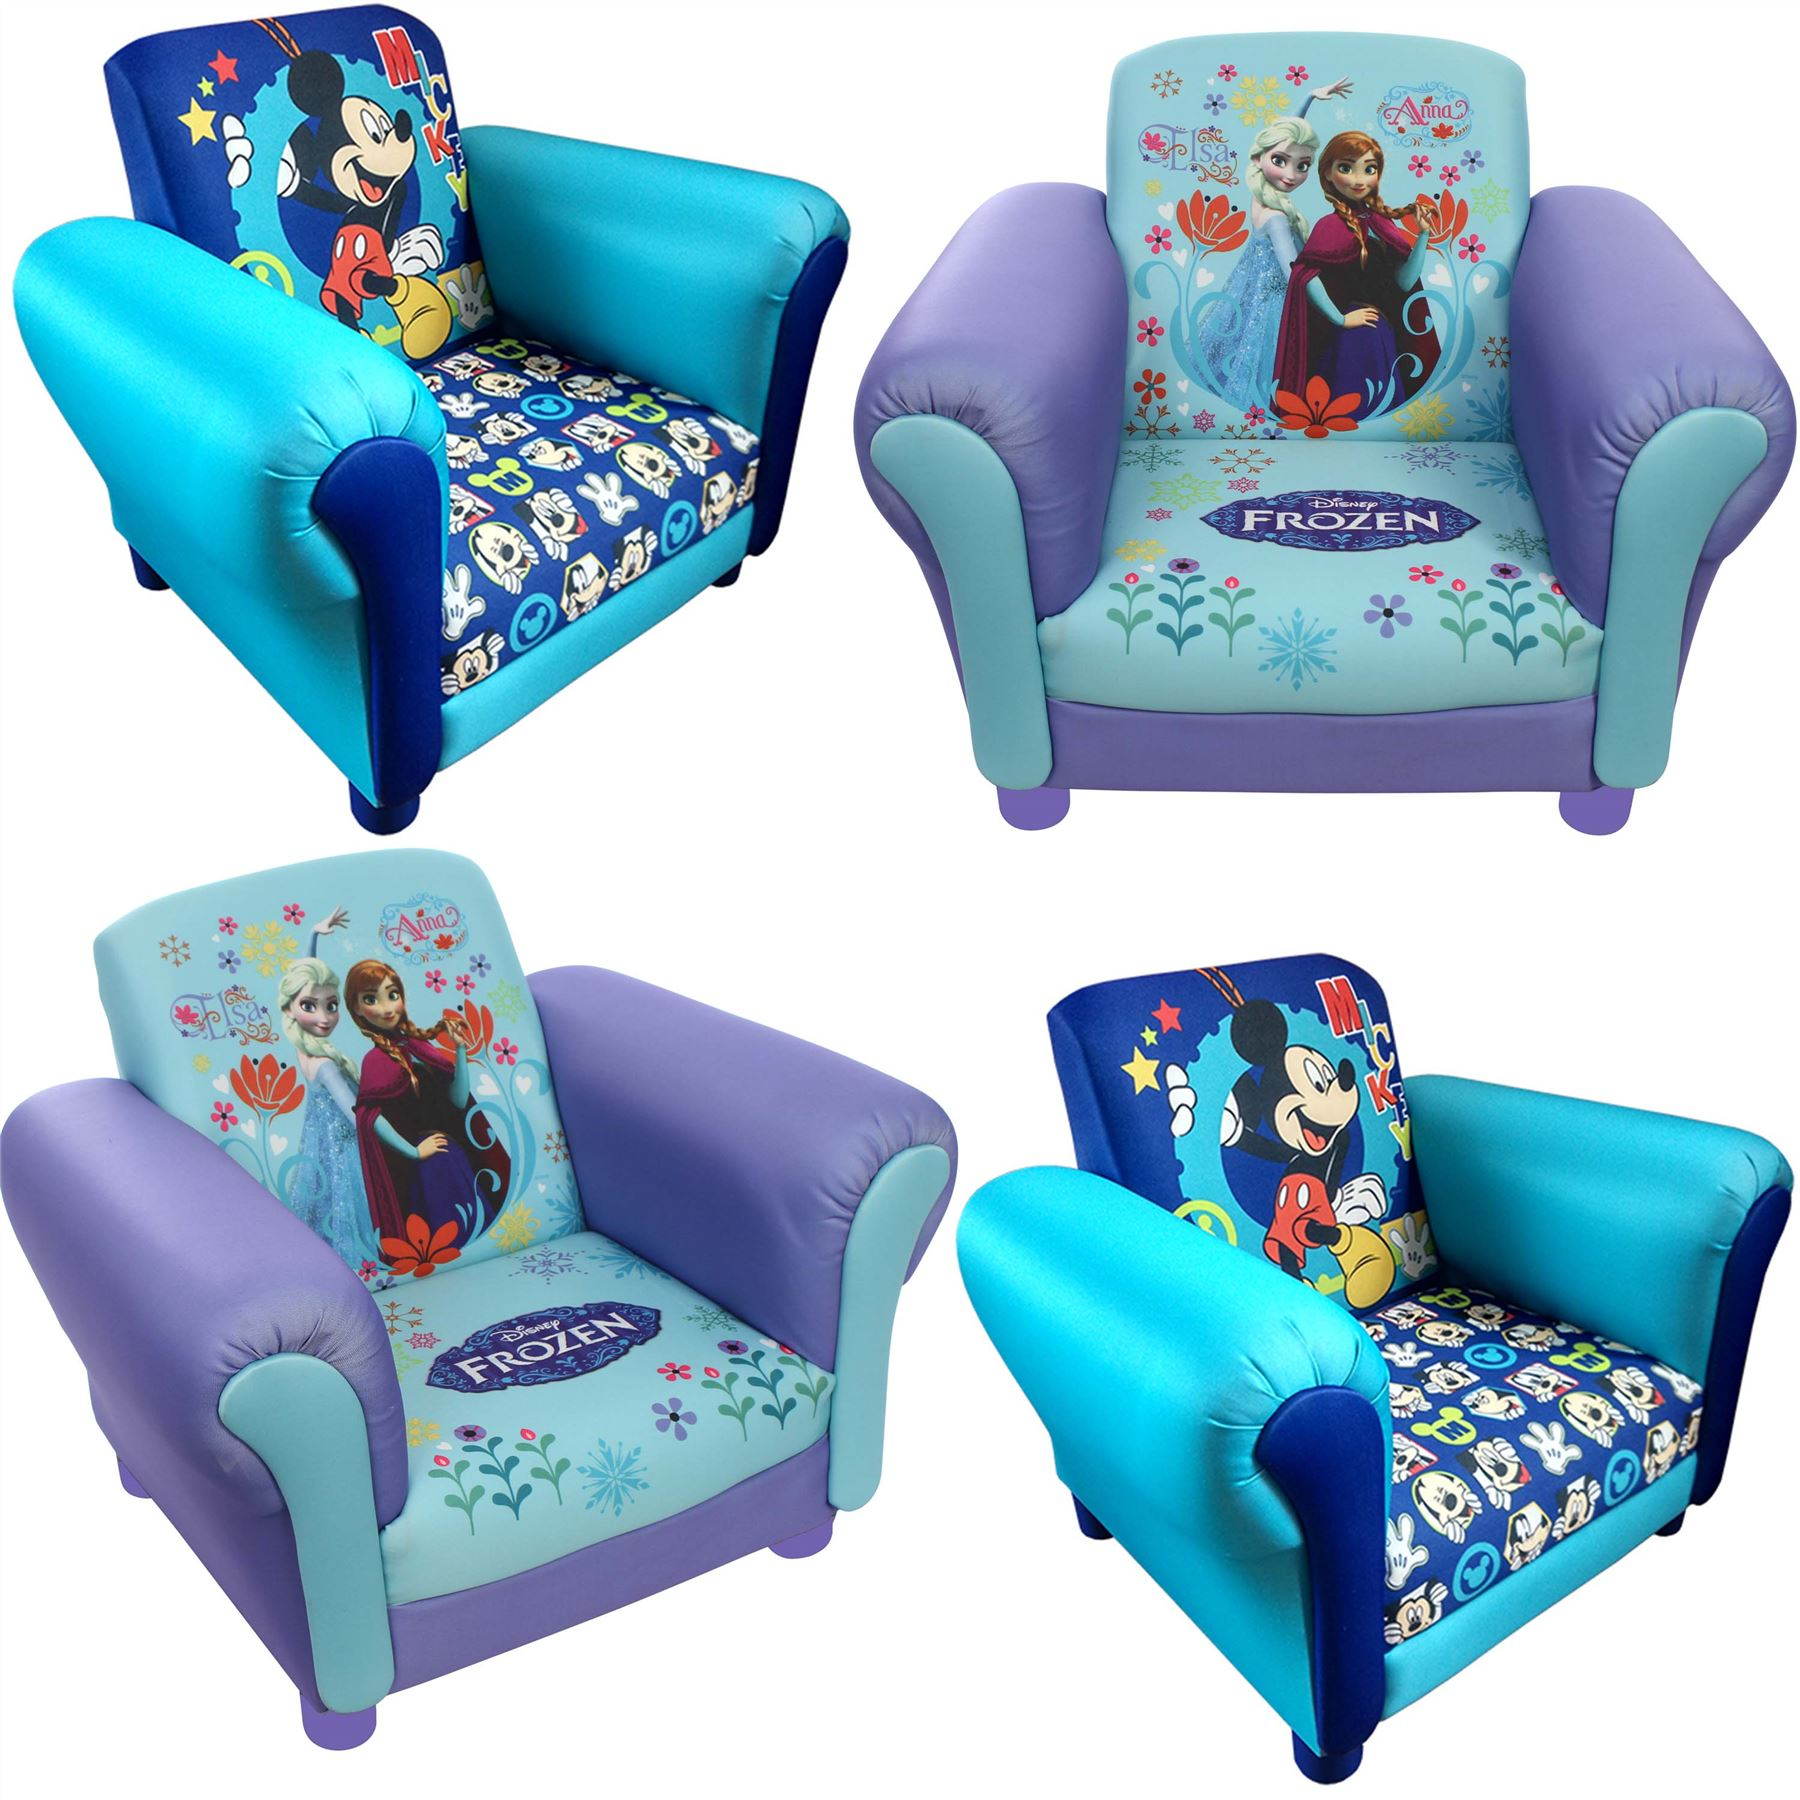 children 39 s princess frozen elsa anna upholstered chair. Black Bedroom Furniture Sets. Home Design Ideas